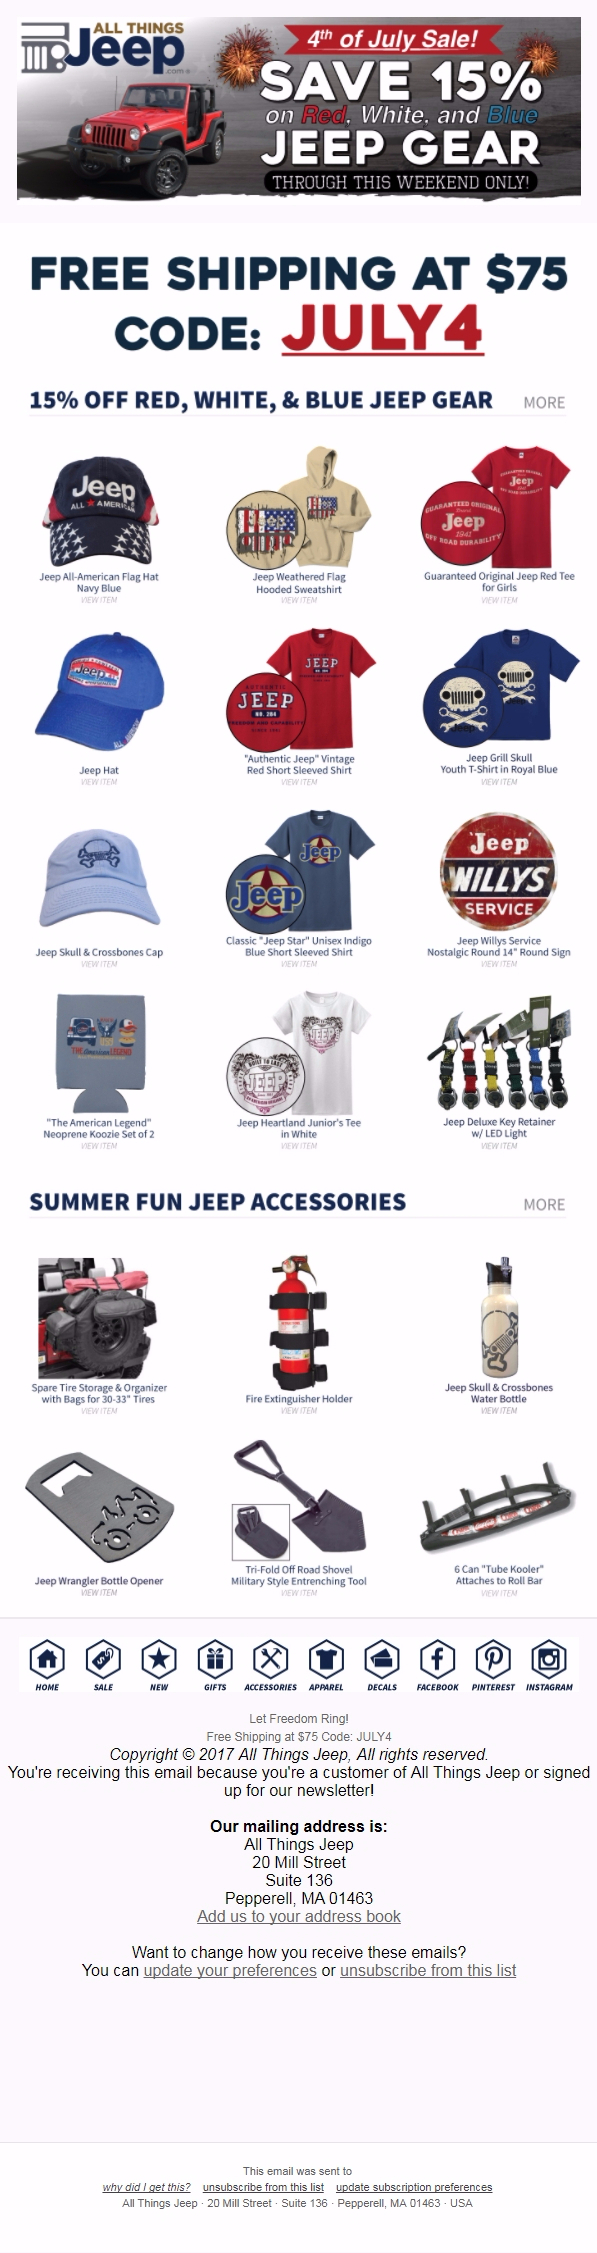 Jeep - Email inspiration